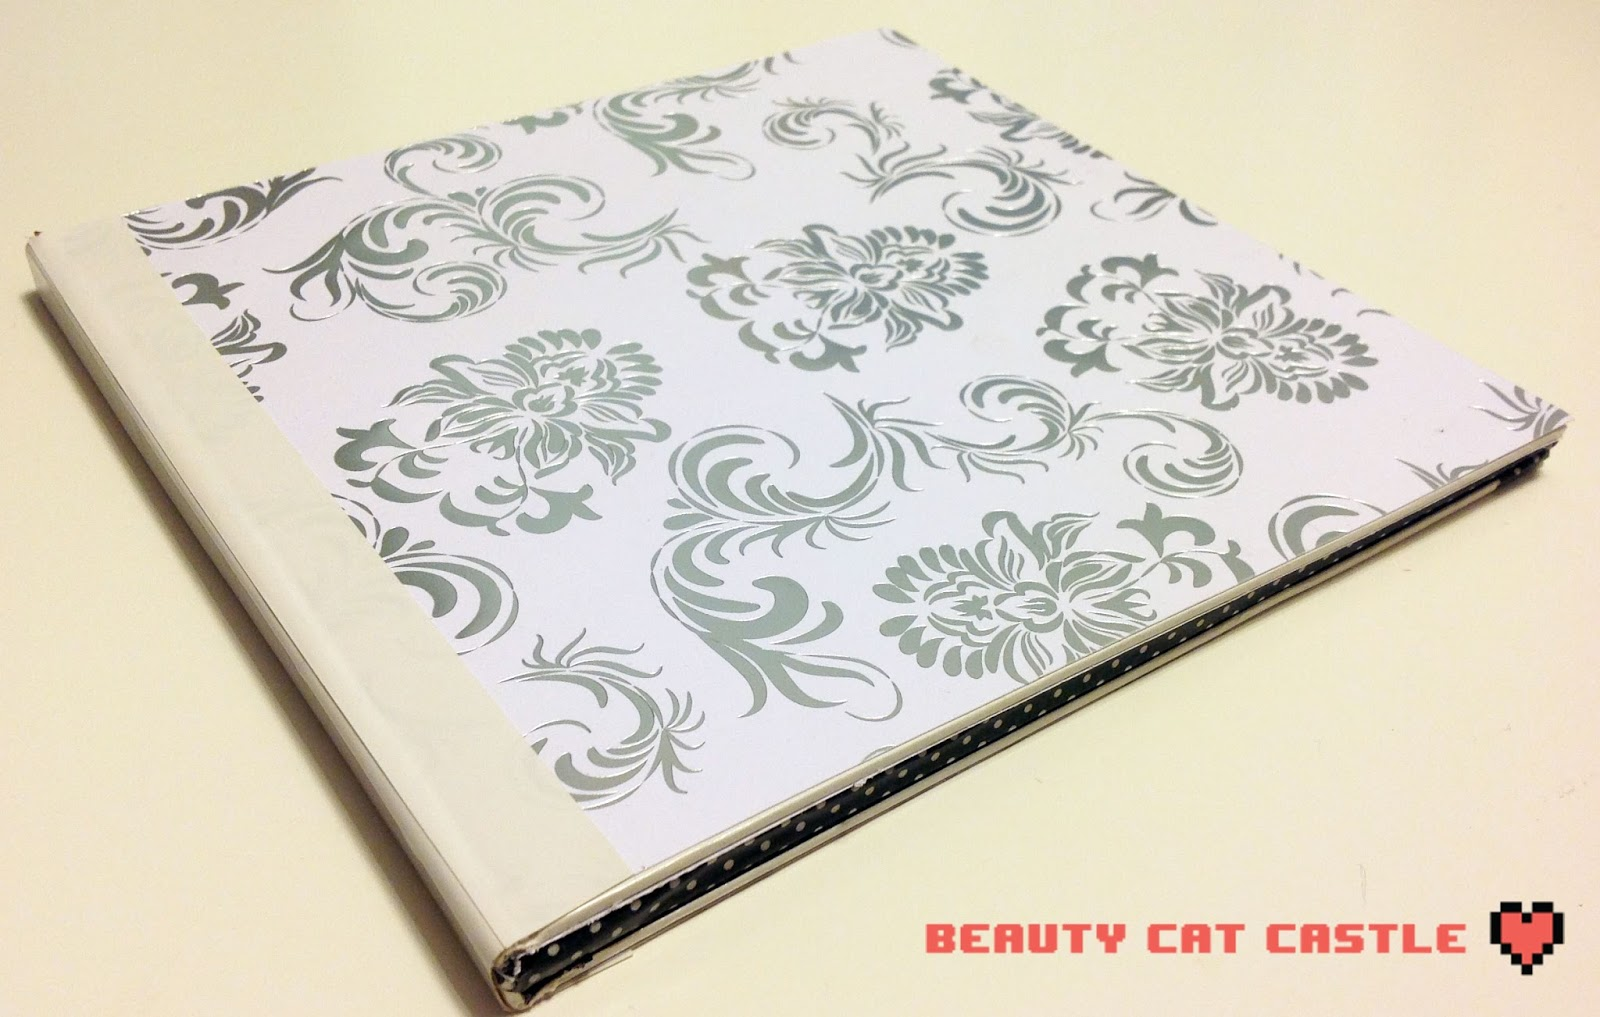 Beauty Cat Castle Diy Z Pallete